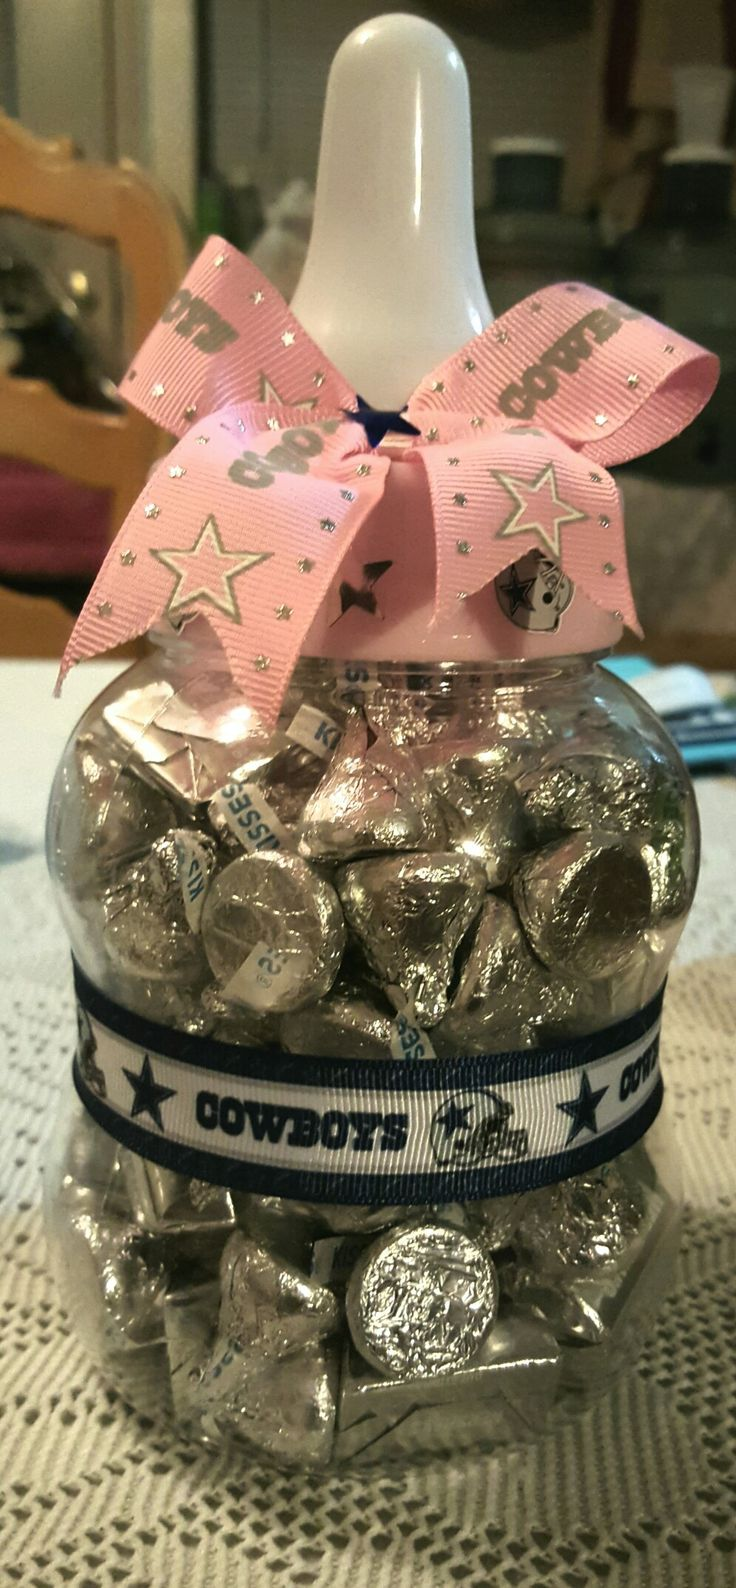 Cowboys baby shower games. Can you guess the number of candies in the bottle?